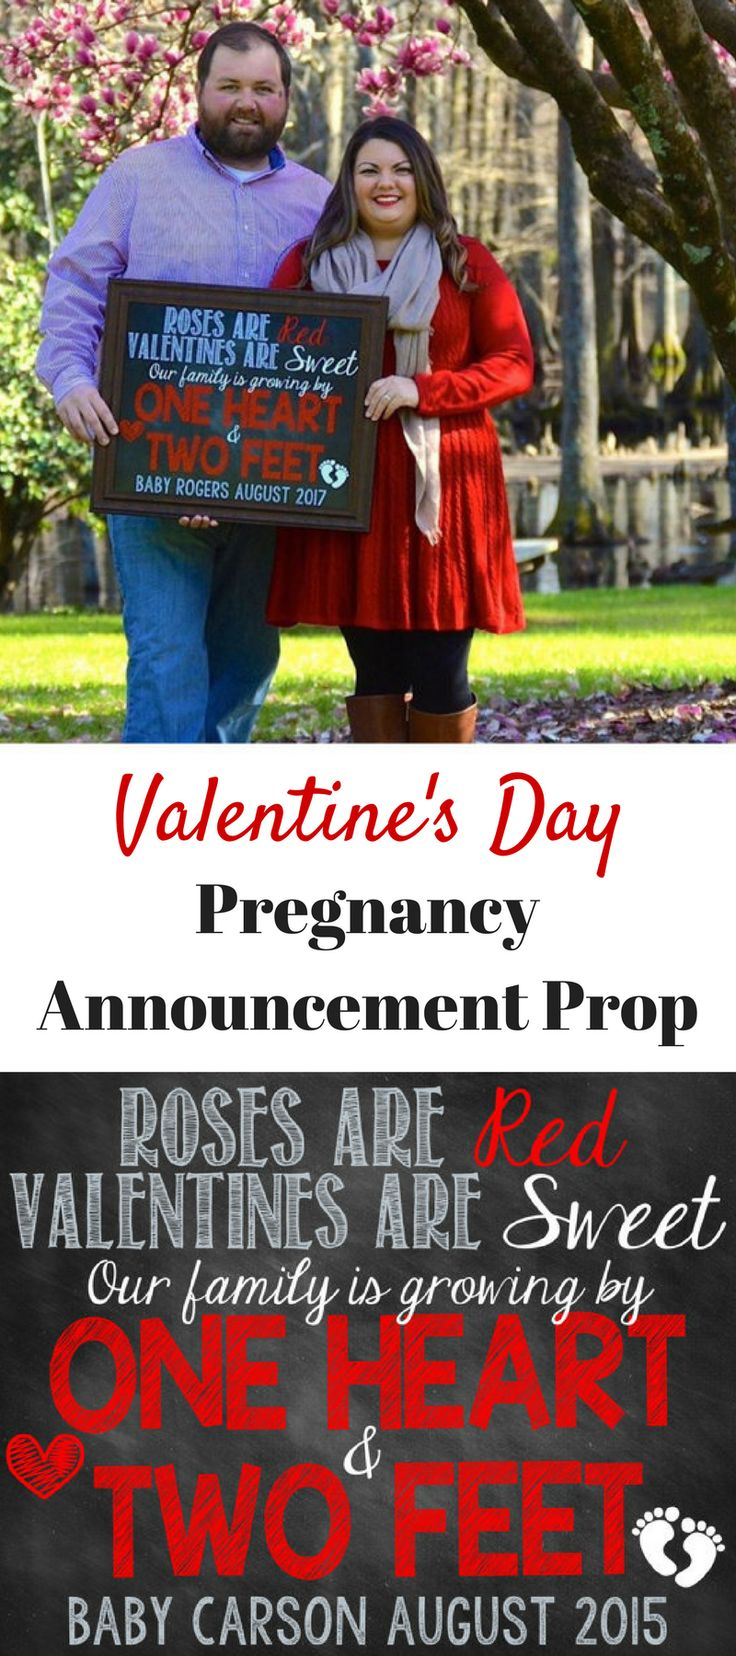 I love the idea of this Valentine's Day pregnancy announcement prop! #ad #valentinesday #valentine #pregnancy #pregnancyannouncement #PhotoProps #photoprop #props